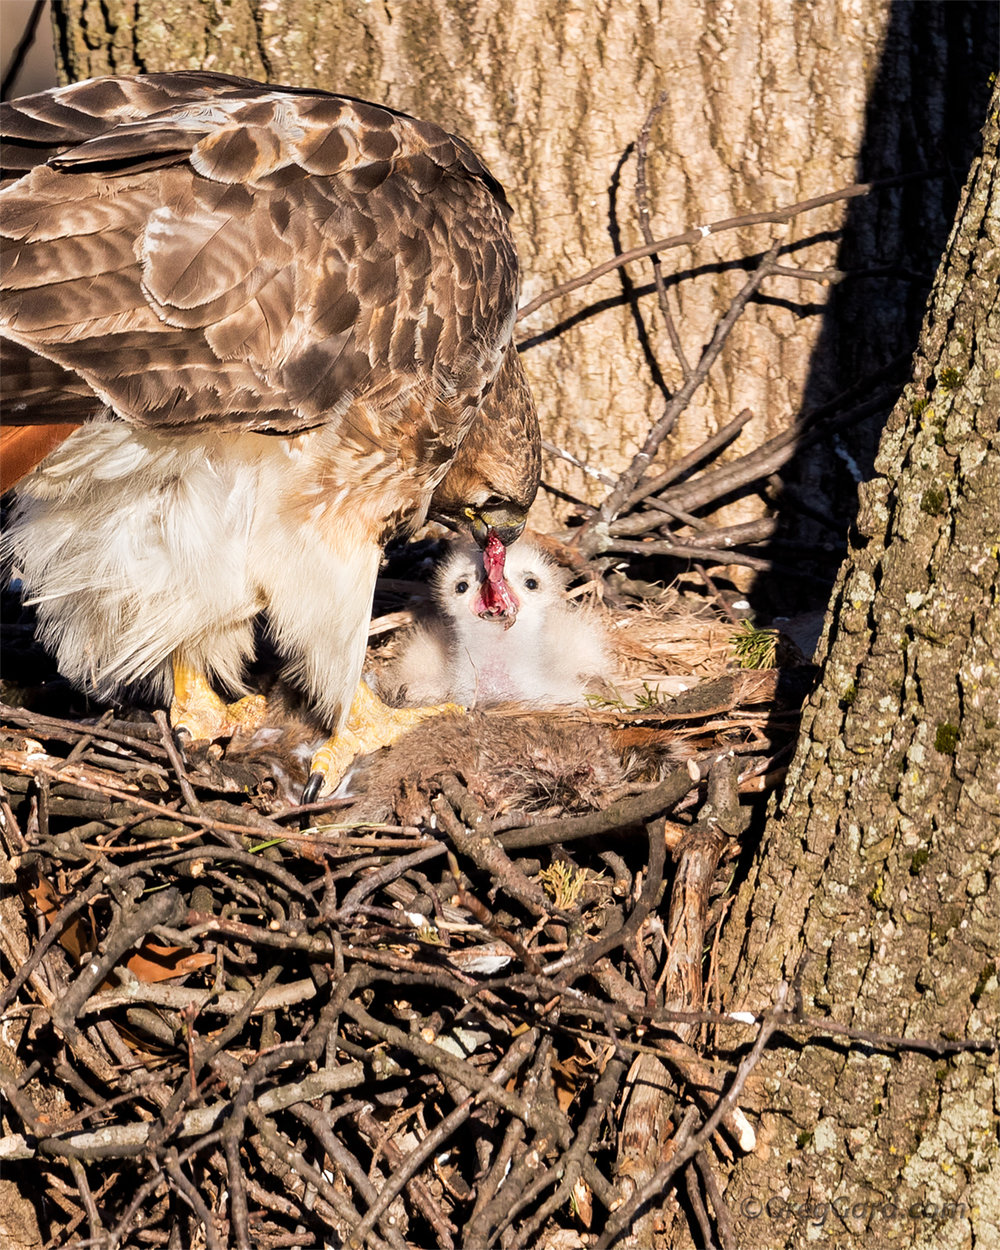 Red-tailed Hawk feeding young - NJ